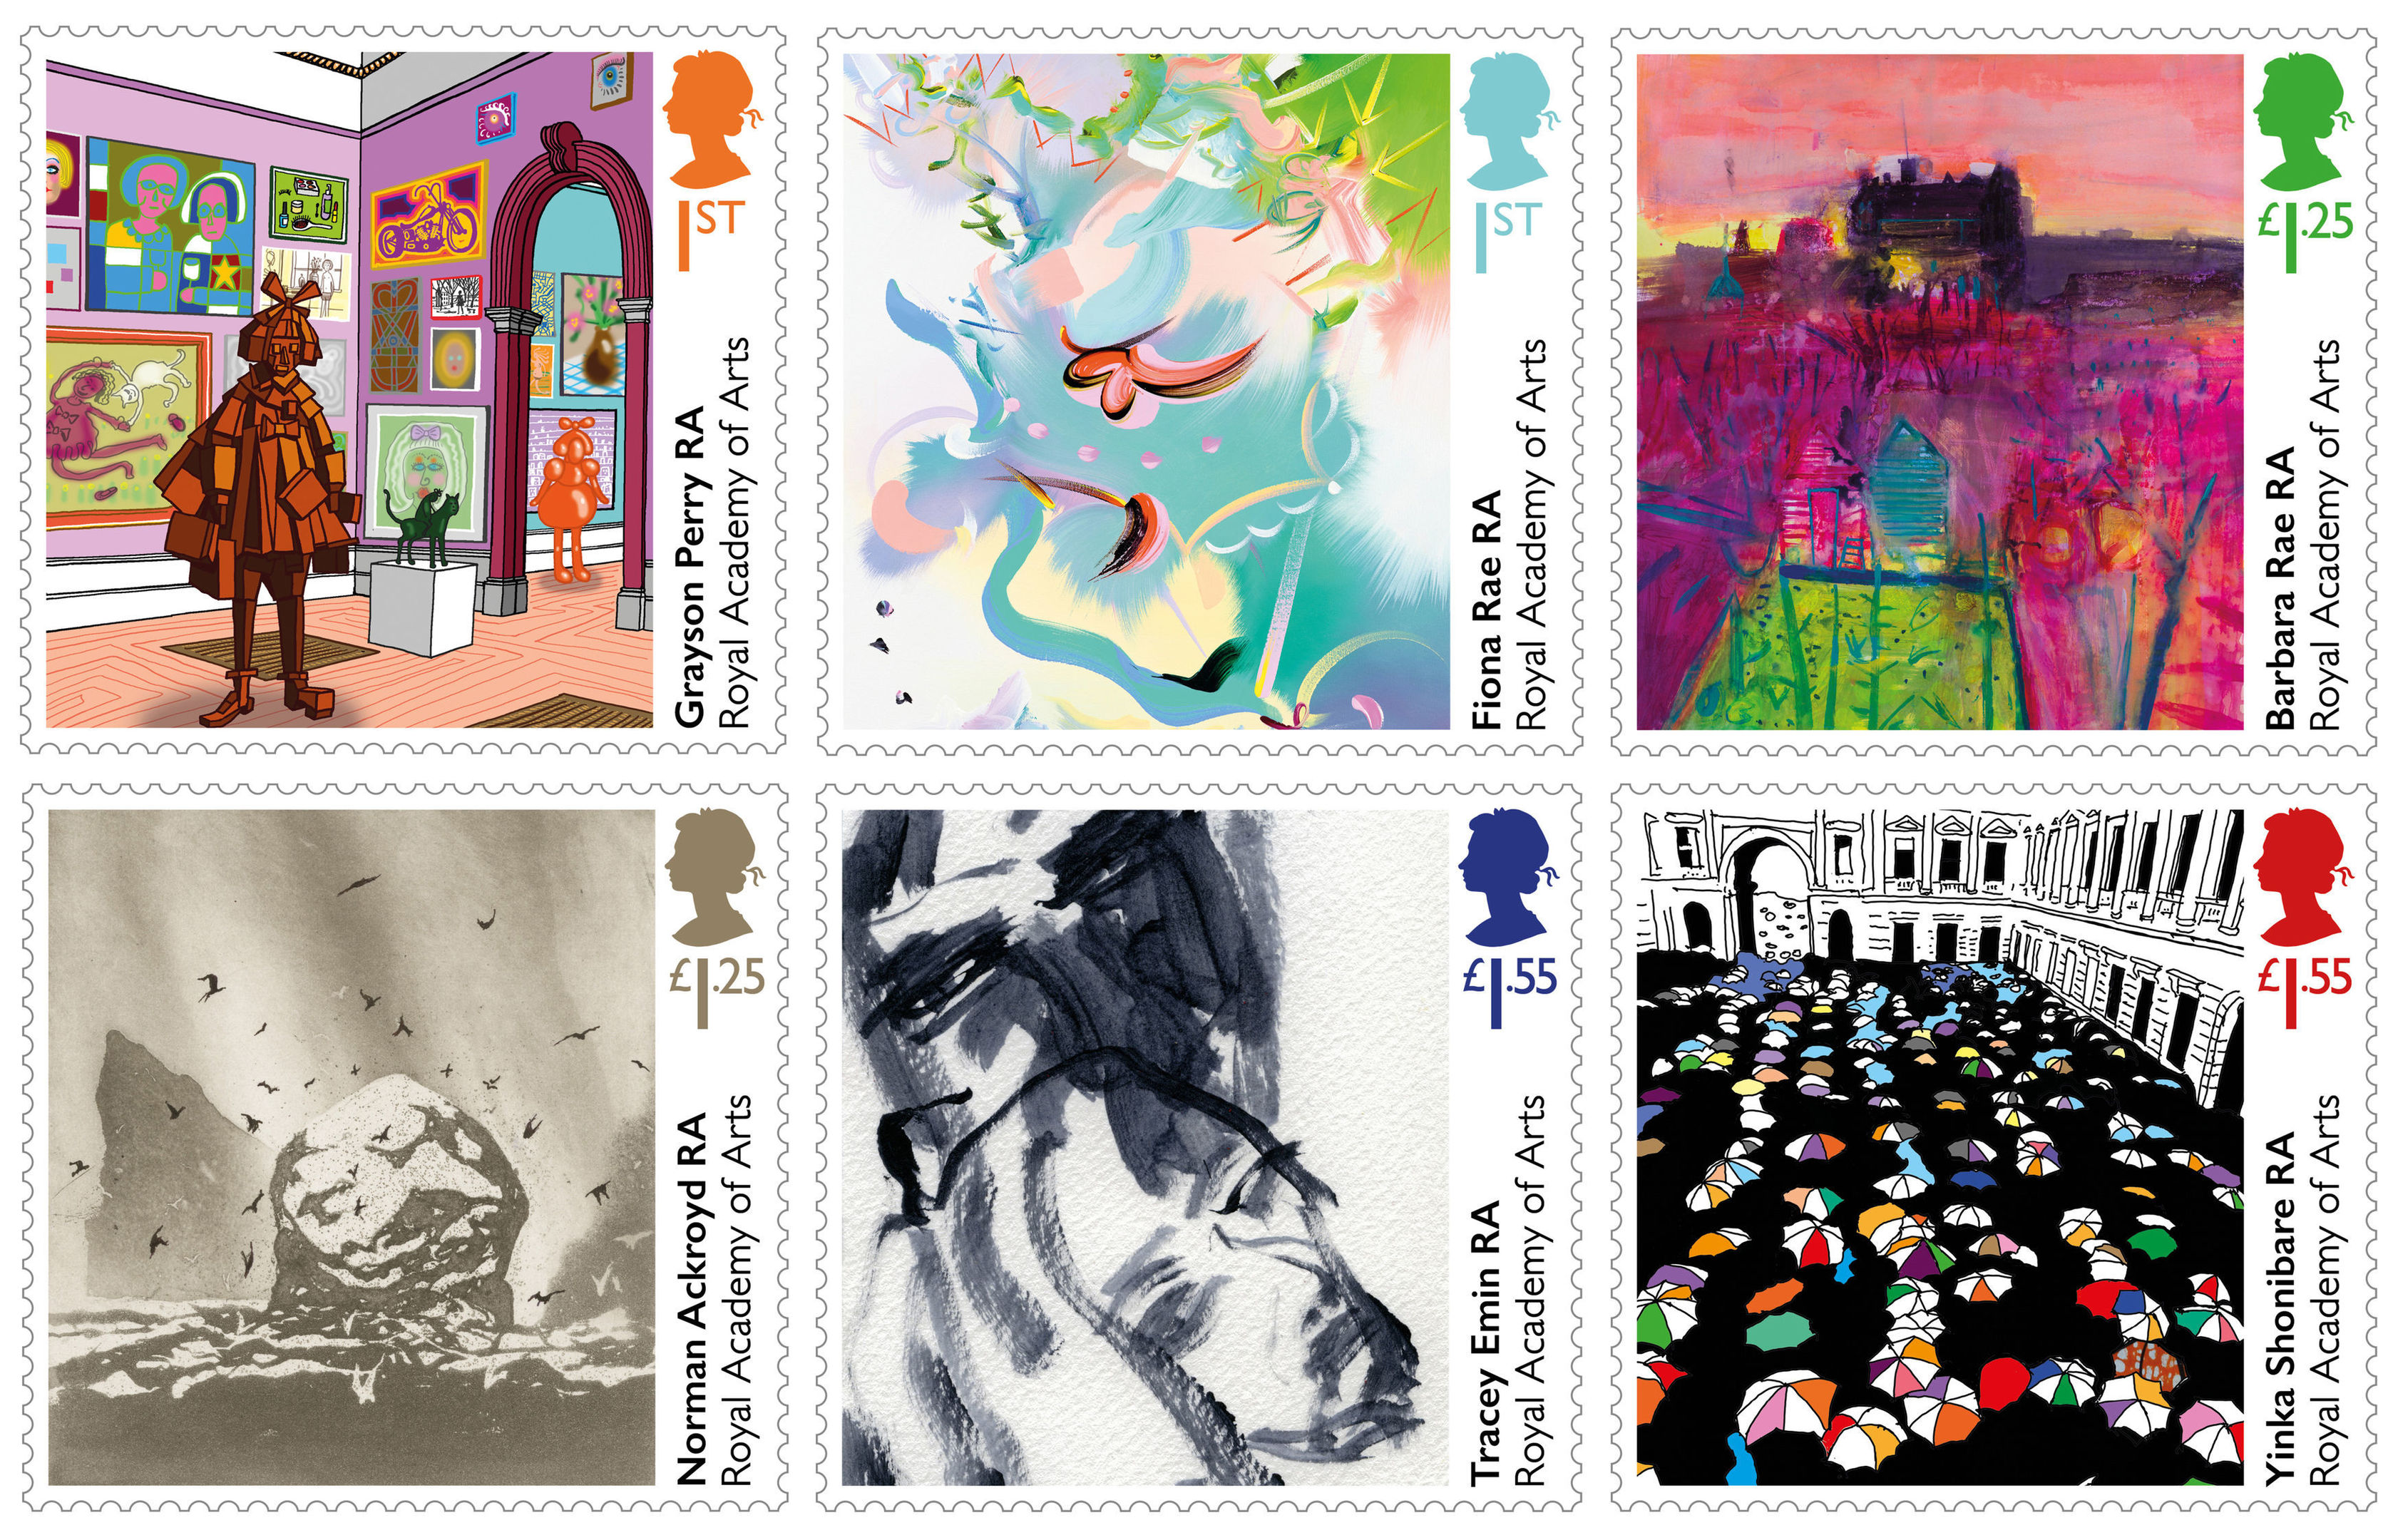 Six commissioned original artwork stamps to mark the 250th anniversary of the founding of the Royal Academy of Arts (Royal Mail/PA Wire)